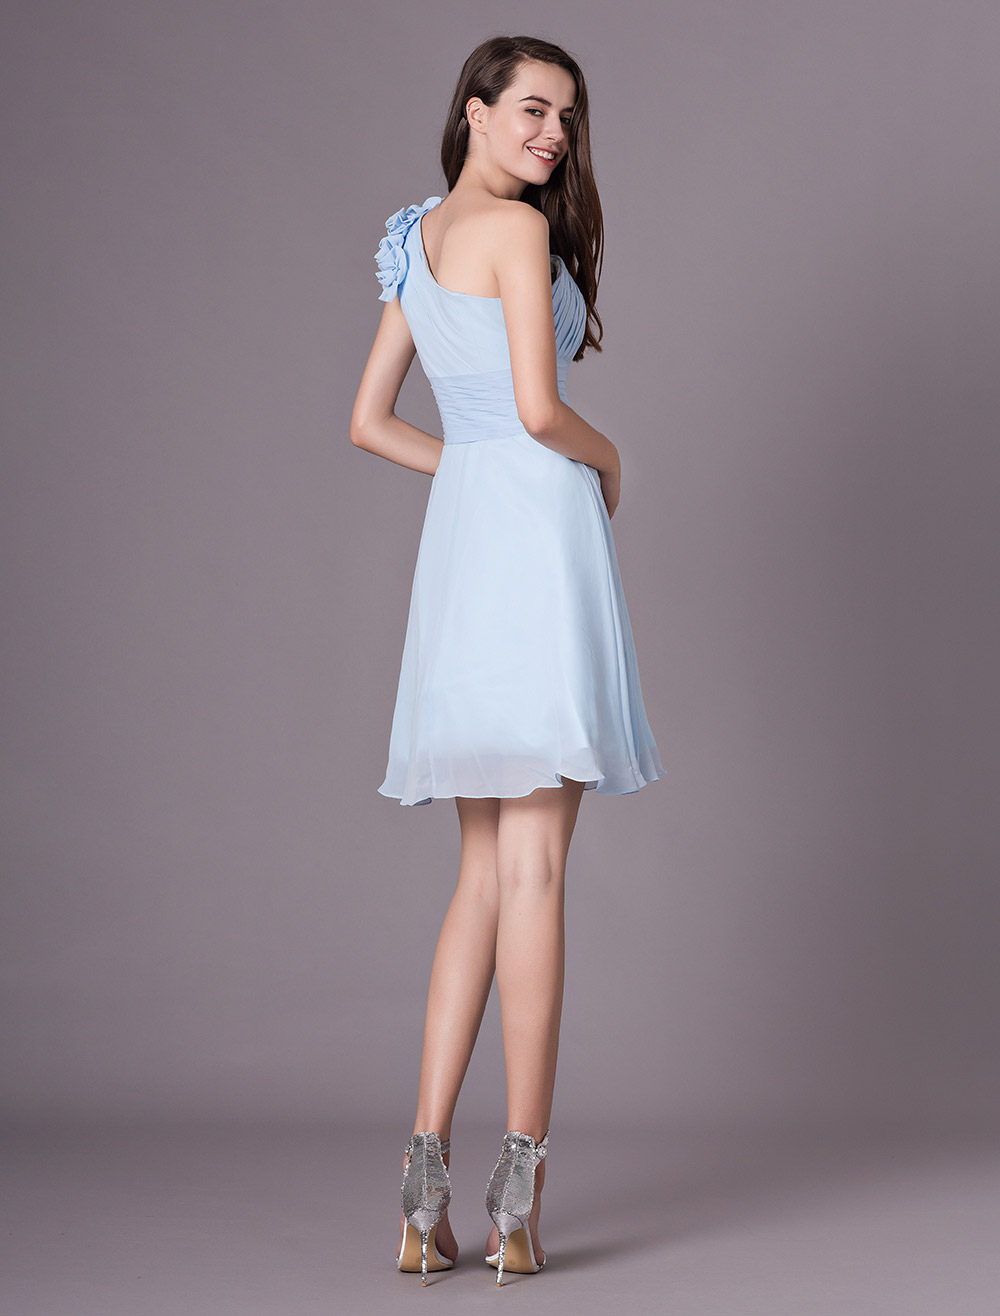 3289aa3c5 ... Chiffon Bridesmaid Dress Baby blue One Shoulder Knee Length Flowers  Prom Dress-No.4 ...